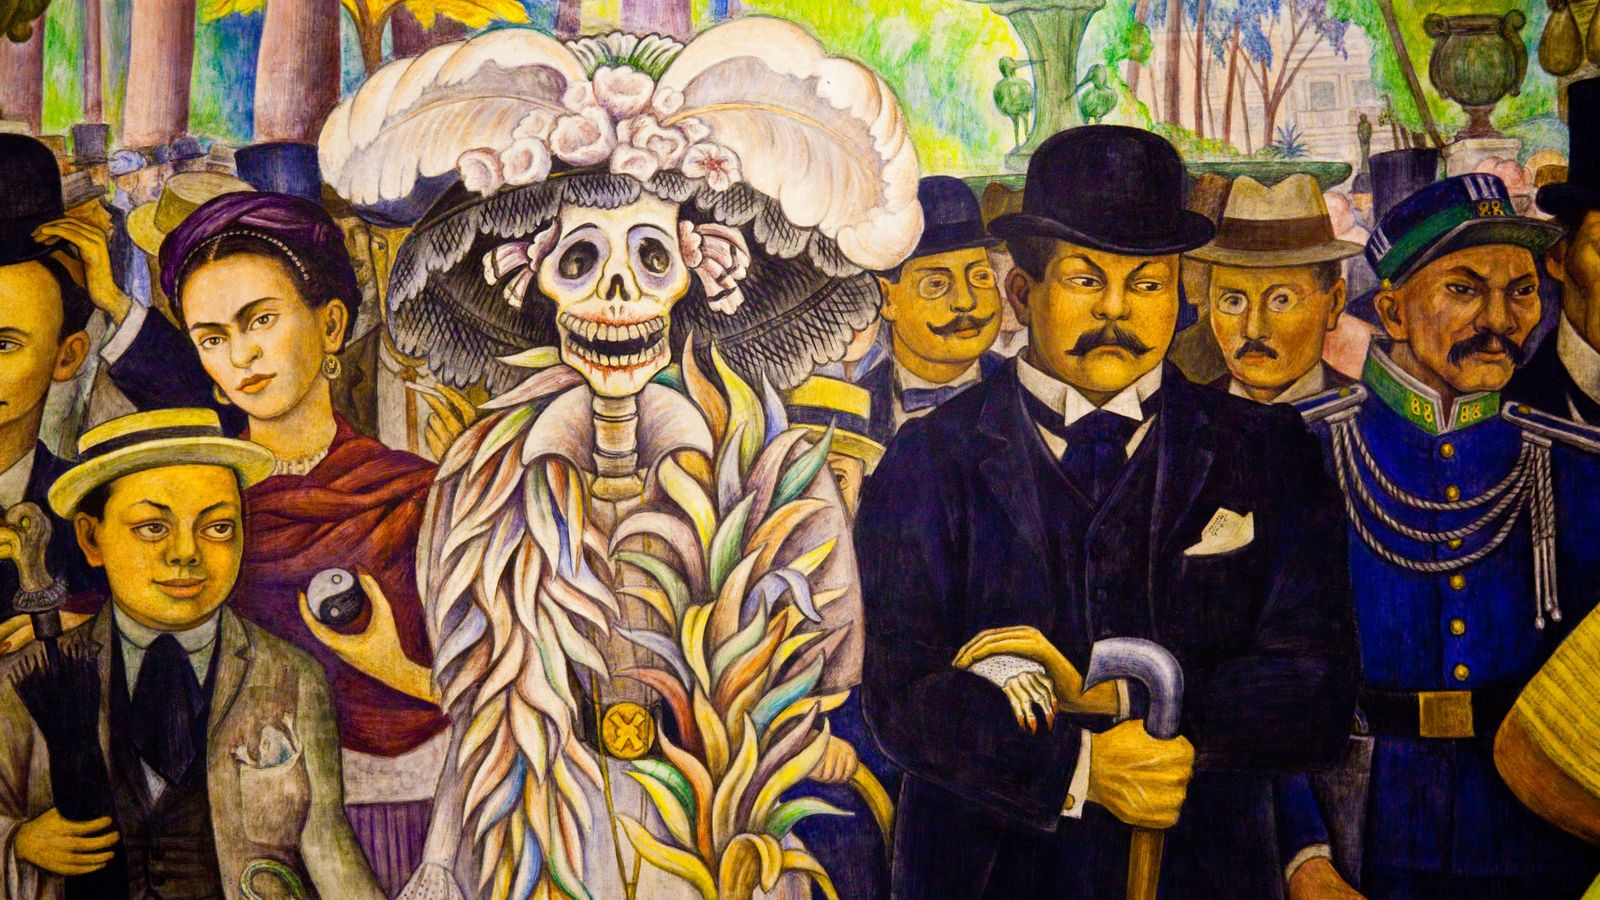 La Catrina Calavera as pictured on Diego Rivera's mural Dream of a Sunday afternoon in the ...